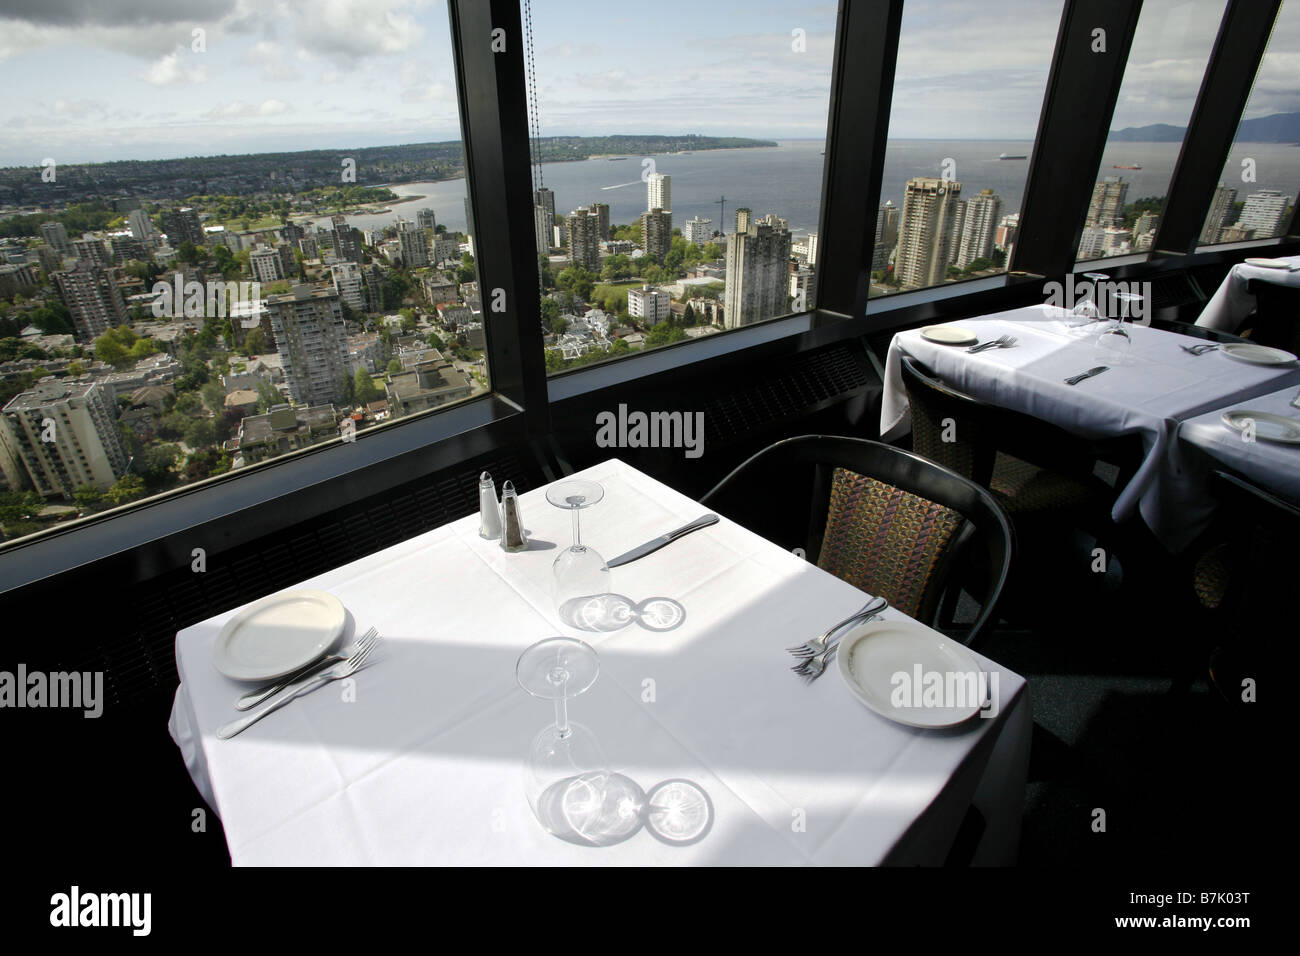 restaurant and revolving observation deck stock photos cloud 9 revolving restaurant vancouver british columbia canada stock image